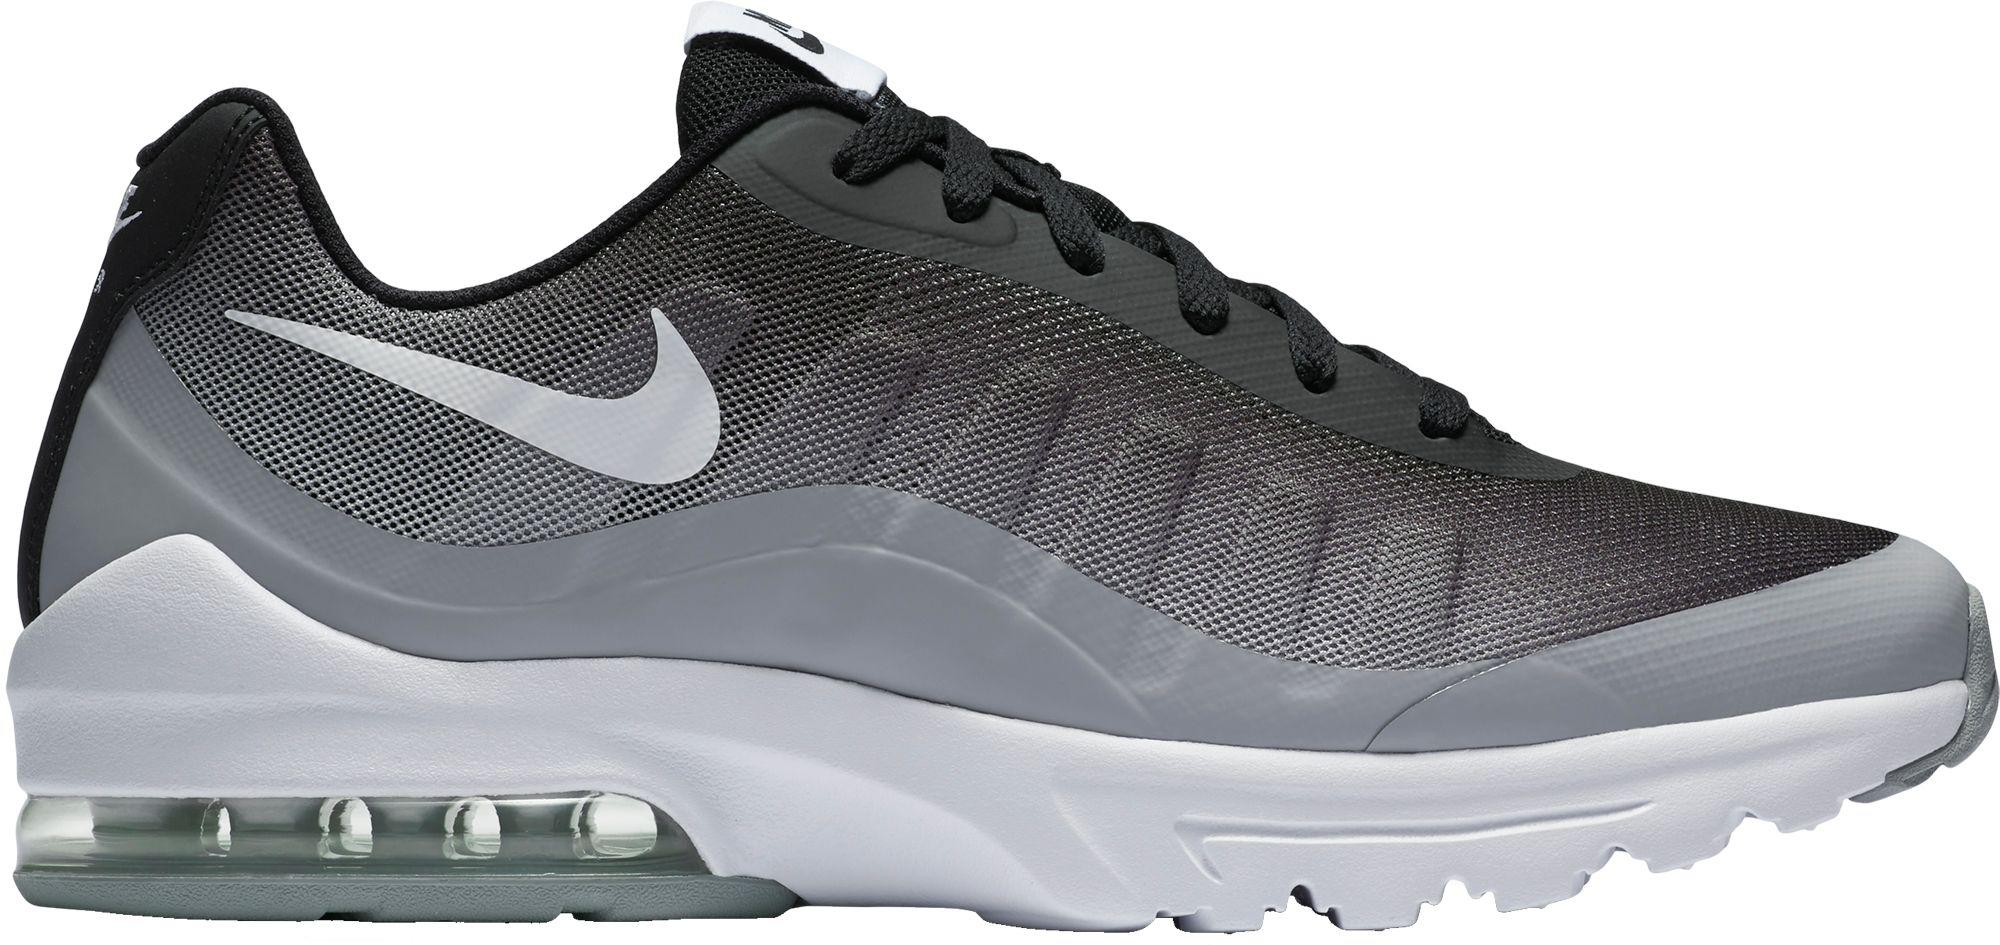 Max Prt Shoes Air Black Nike Lyst For Men In Invigor fqZx5atw